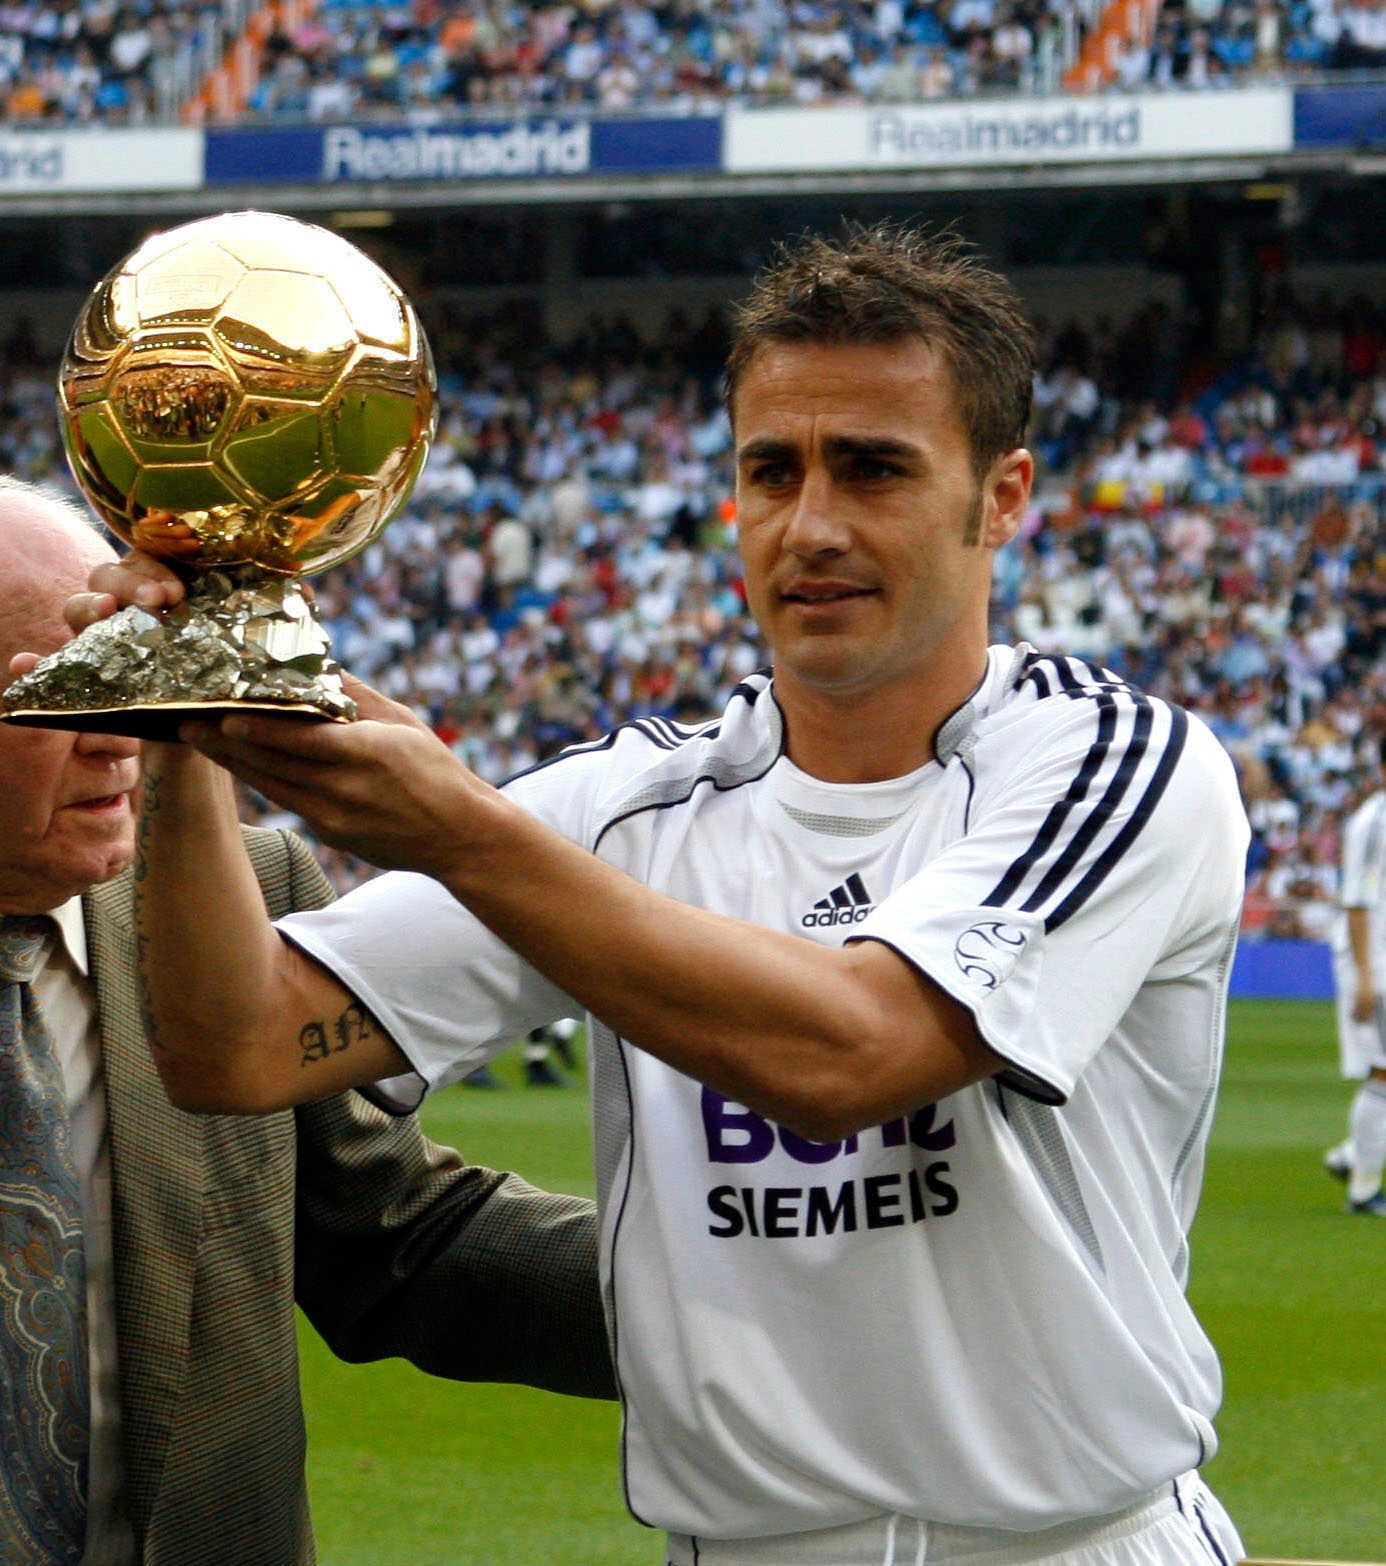 Image result for Cannavaro with the Ballon d'Or after a scintillating year with Italy and Real Madrid in 2006